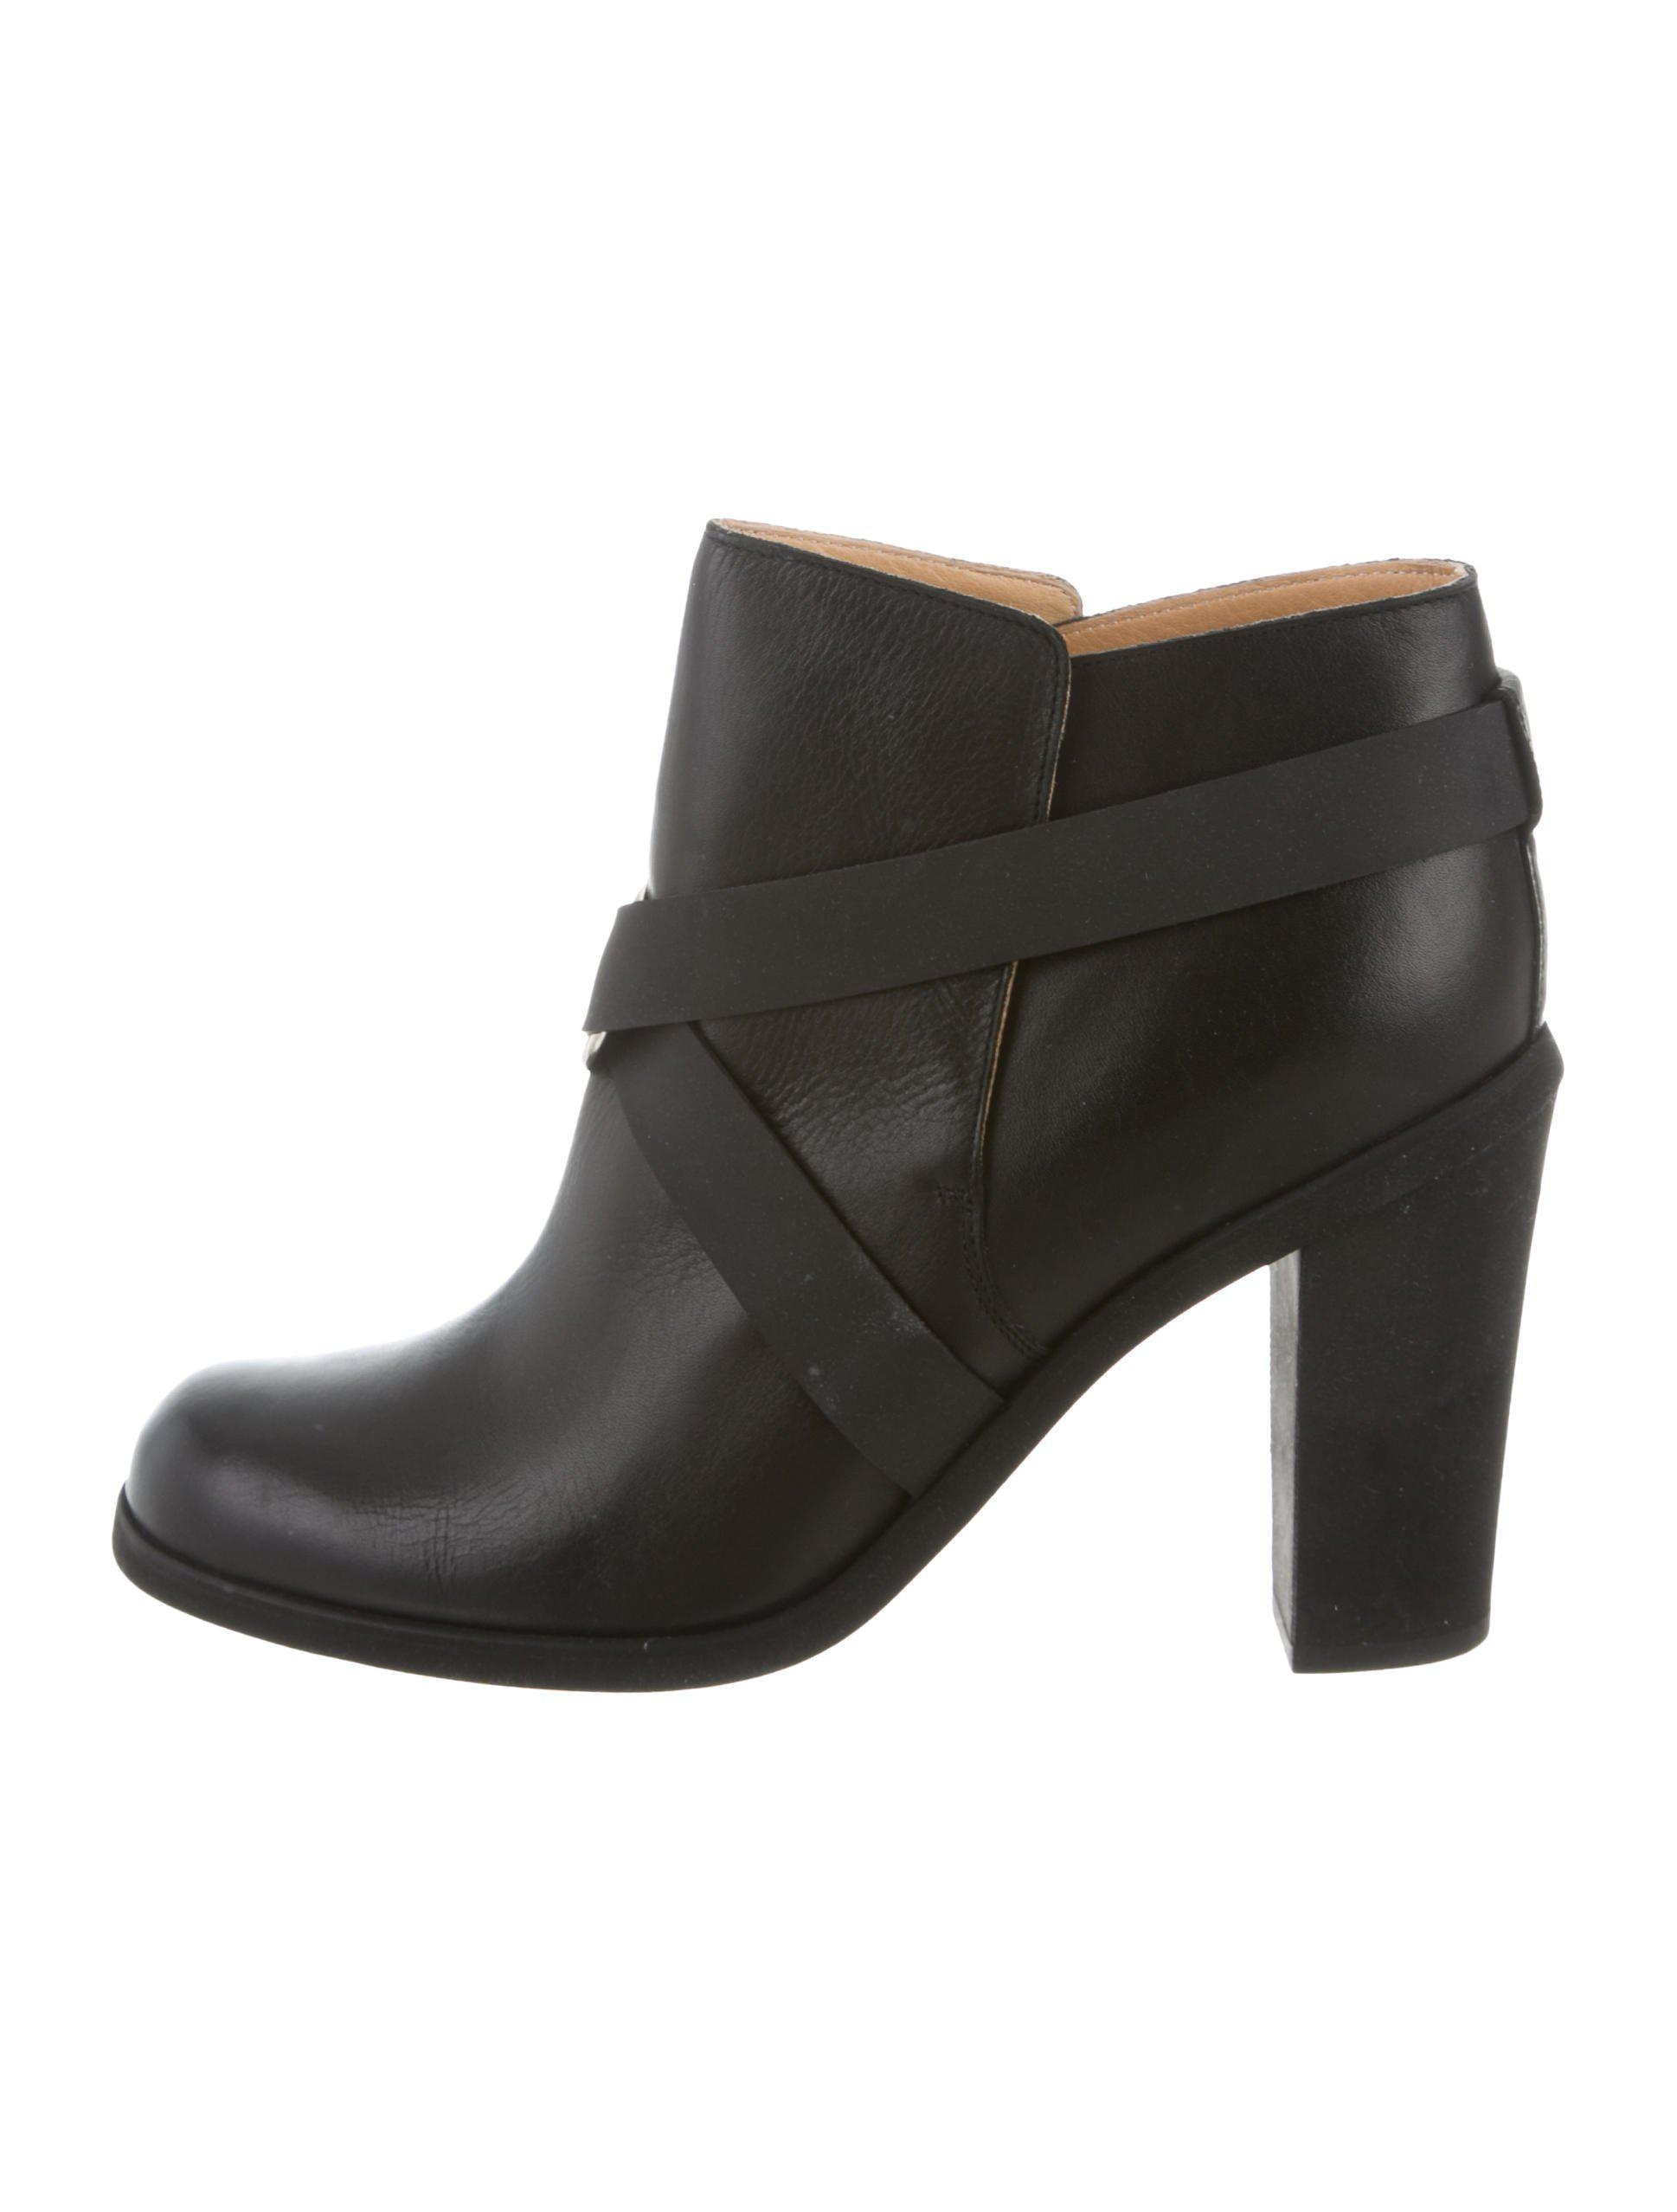 Maison Margiela Leather Round-Toe Booties w/ Tags discount original buy cheap for sale aPeGvRZqb